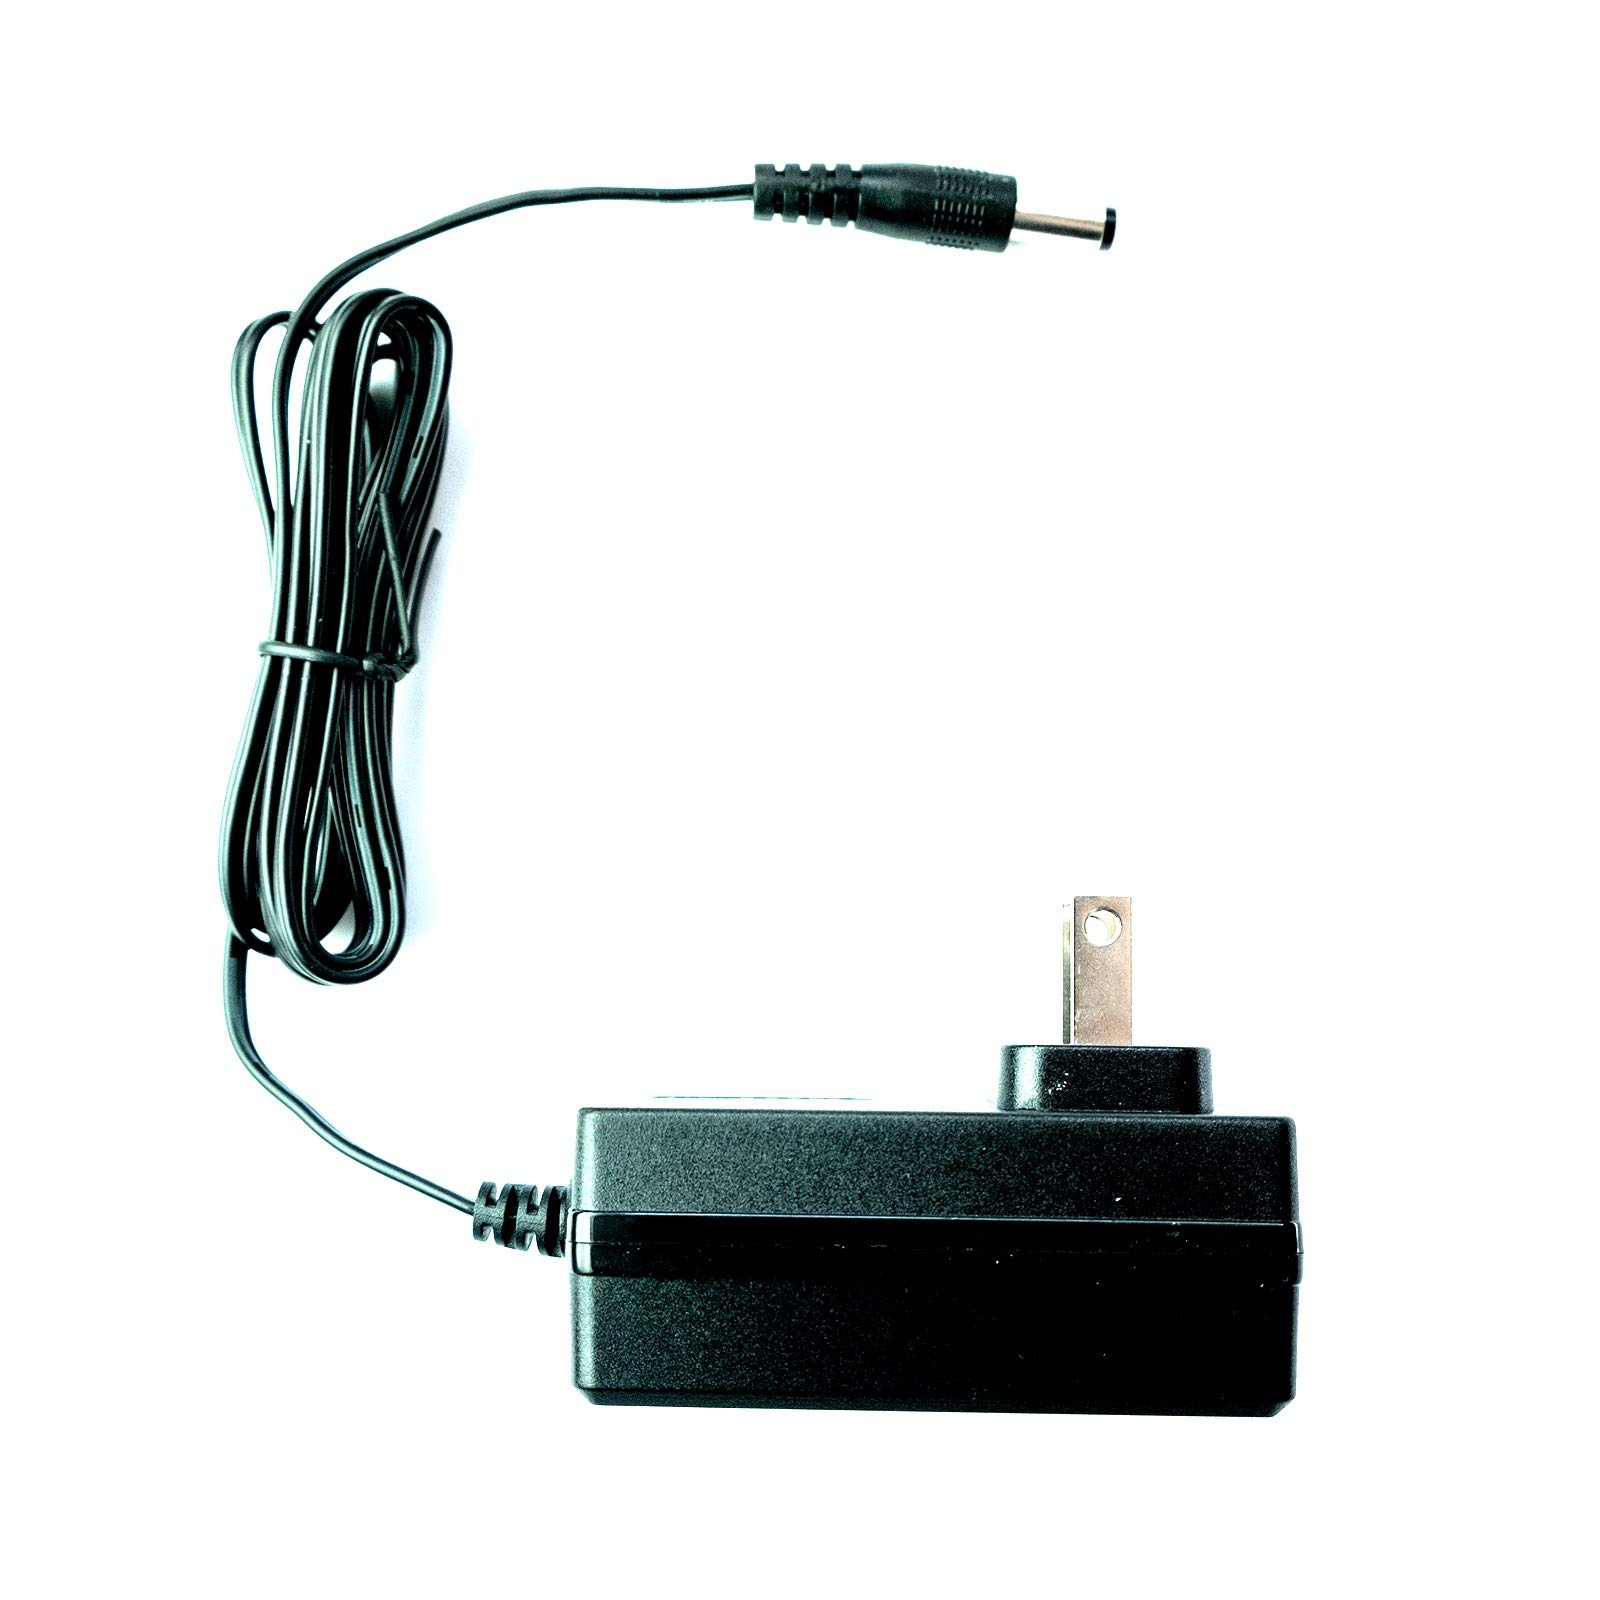 12V Western Digital Easystore 8TB USB 3.0 External hard drive replacement power supply adaptor - US plug by MyVolts (Image #3)